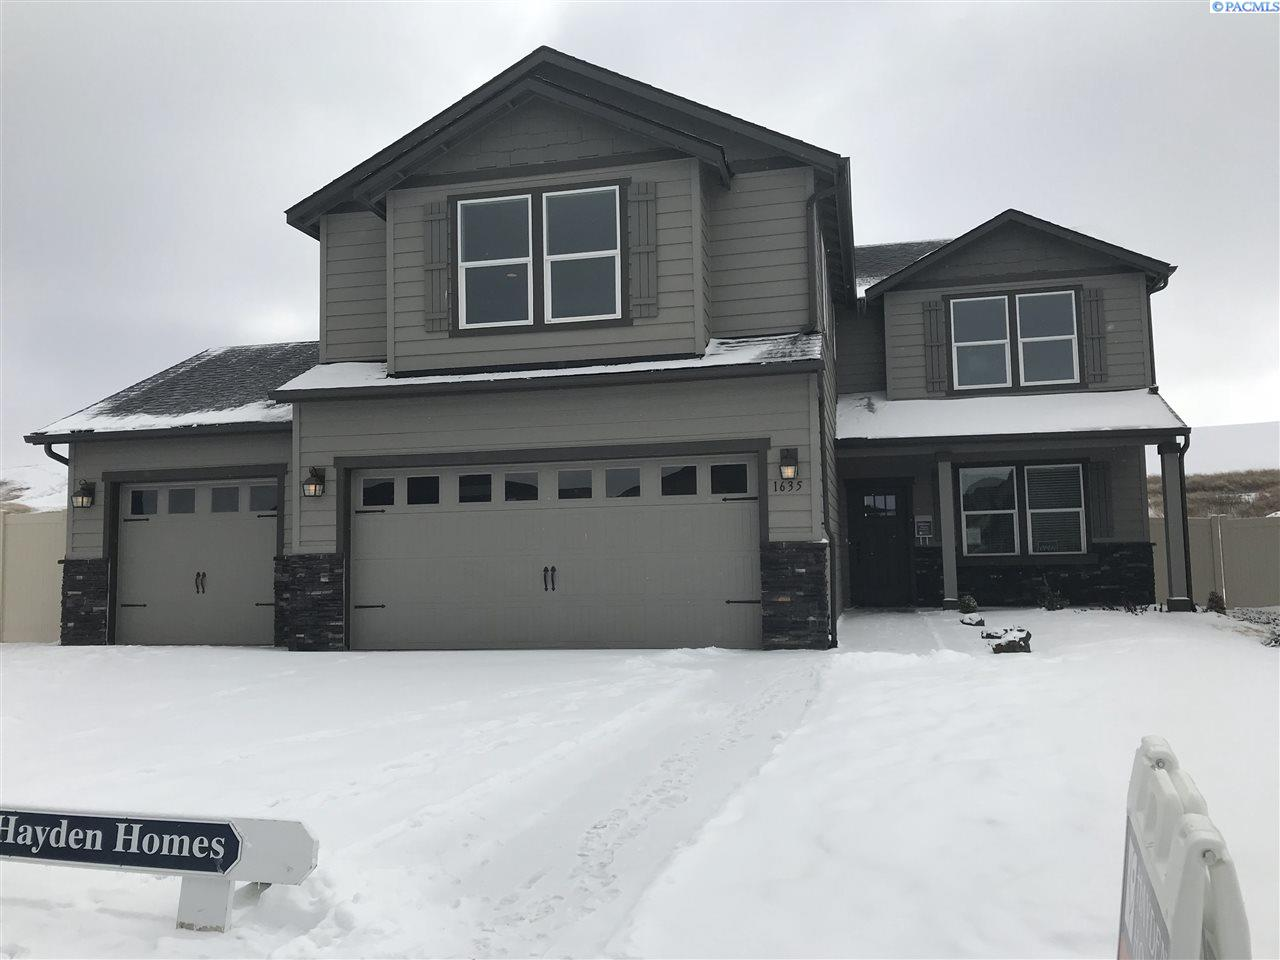 Single Family Home for Sale at 1635 SW Panorama Drive 1635 SW Panorama Drive Pullman, Washington 99163 United States